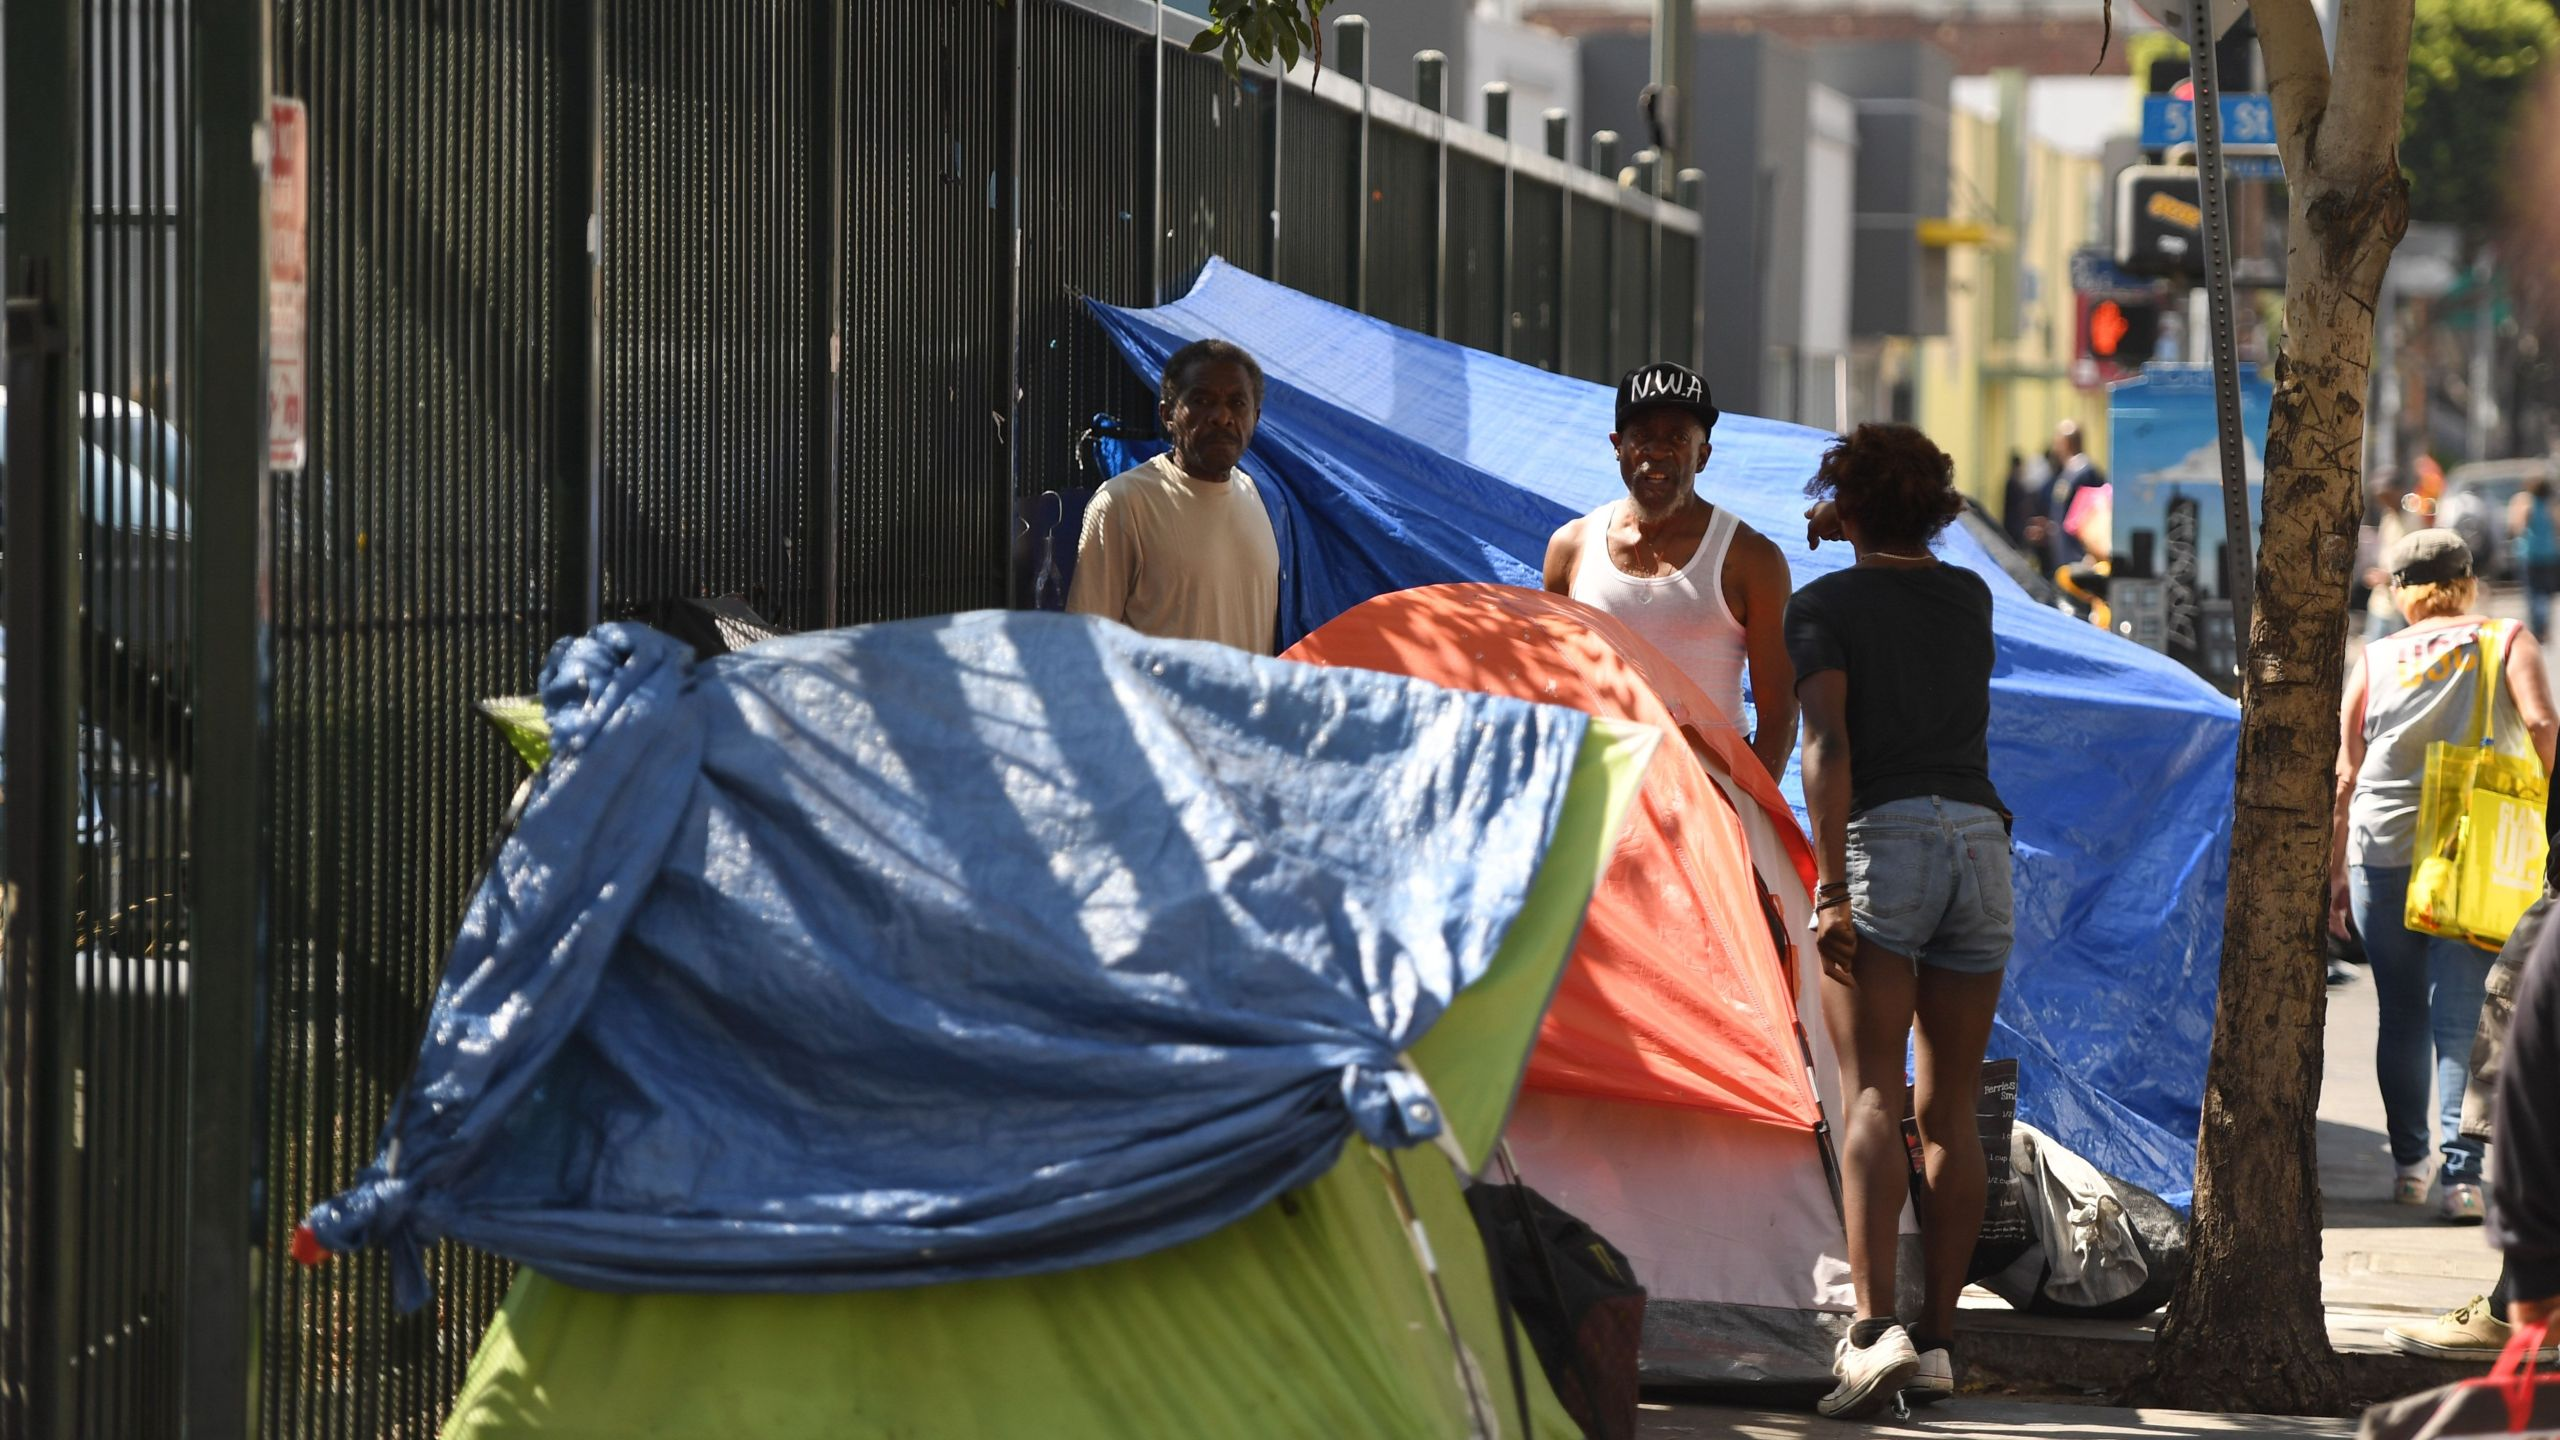 Tents line the street in Skid Row in Los Angeles on Sept. 17, 2019. (Credit: Robyn Beck / AFP / Getty Images)